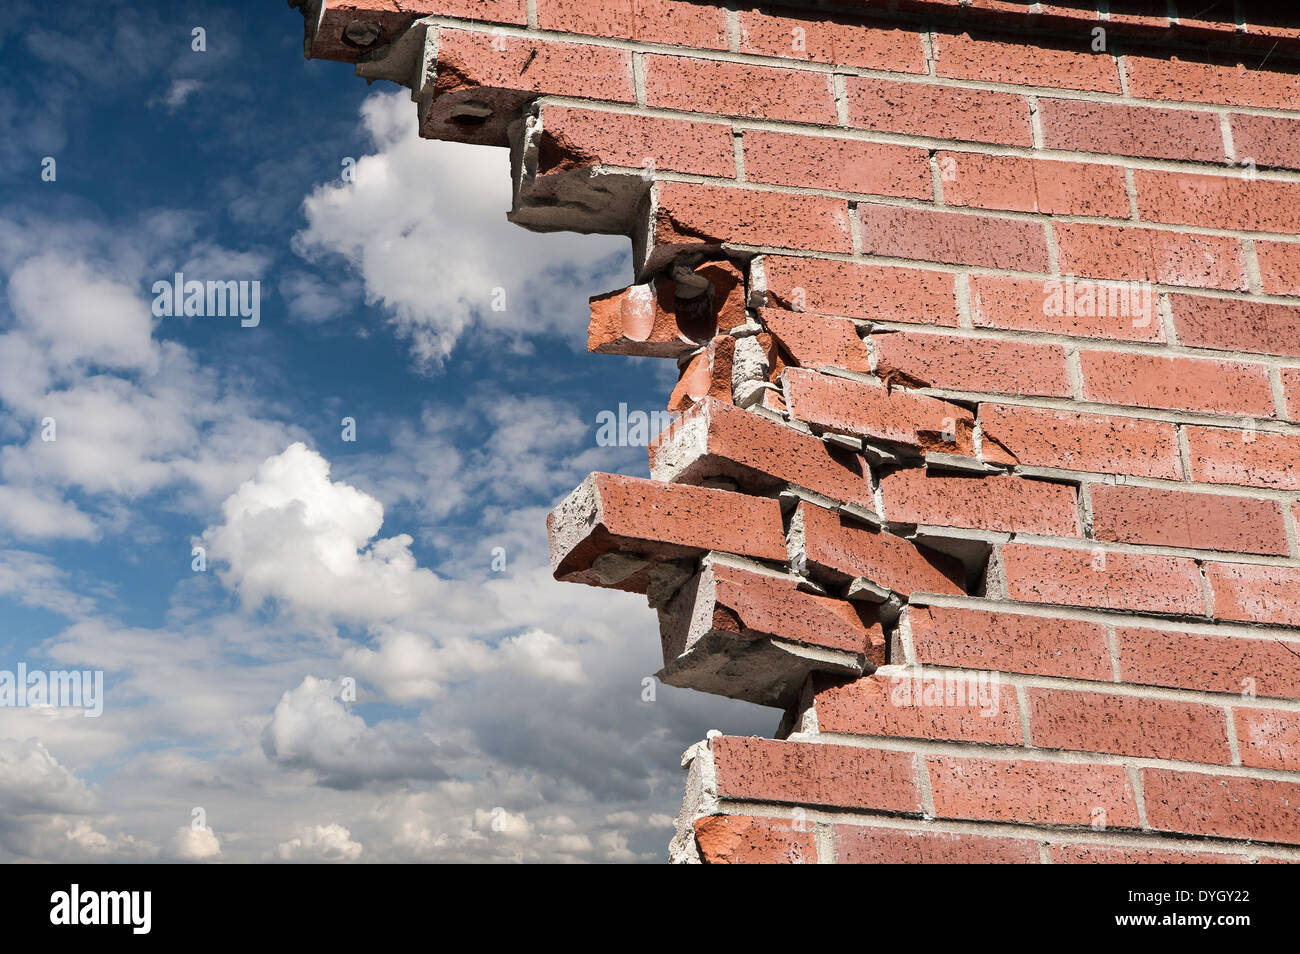 Broken brick wall and blue sky with clouds. - Stock Image